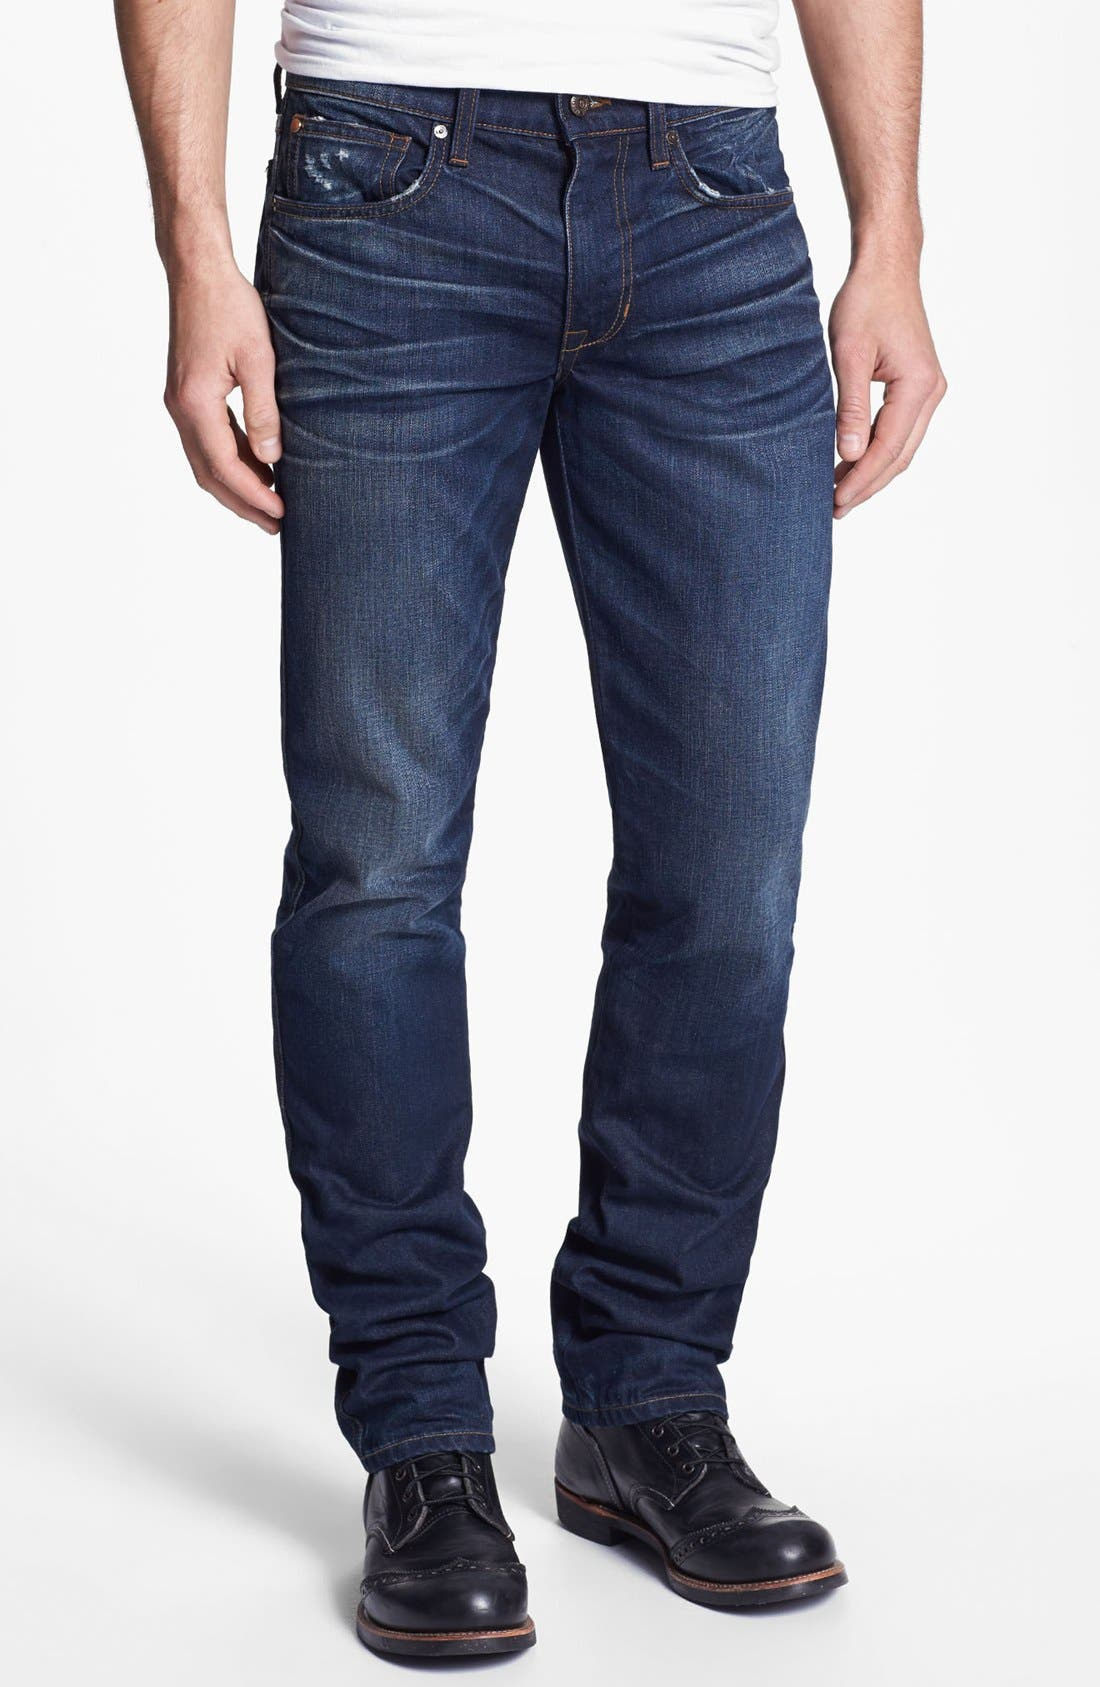 Alternate Image 1 Selected - Joe's 'Brixton' Slim Fit Jeans (Luke)